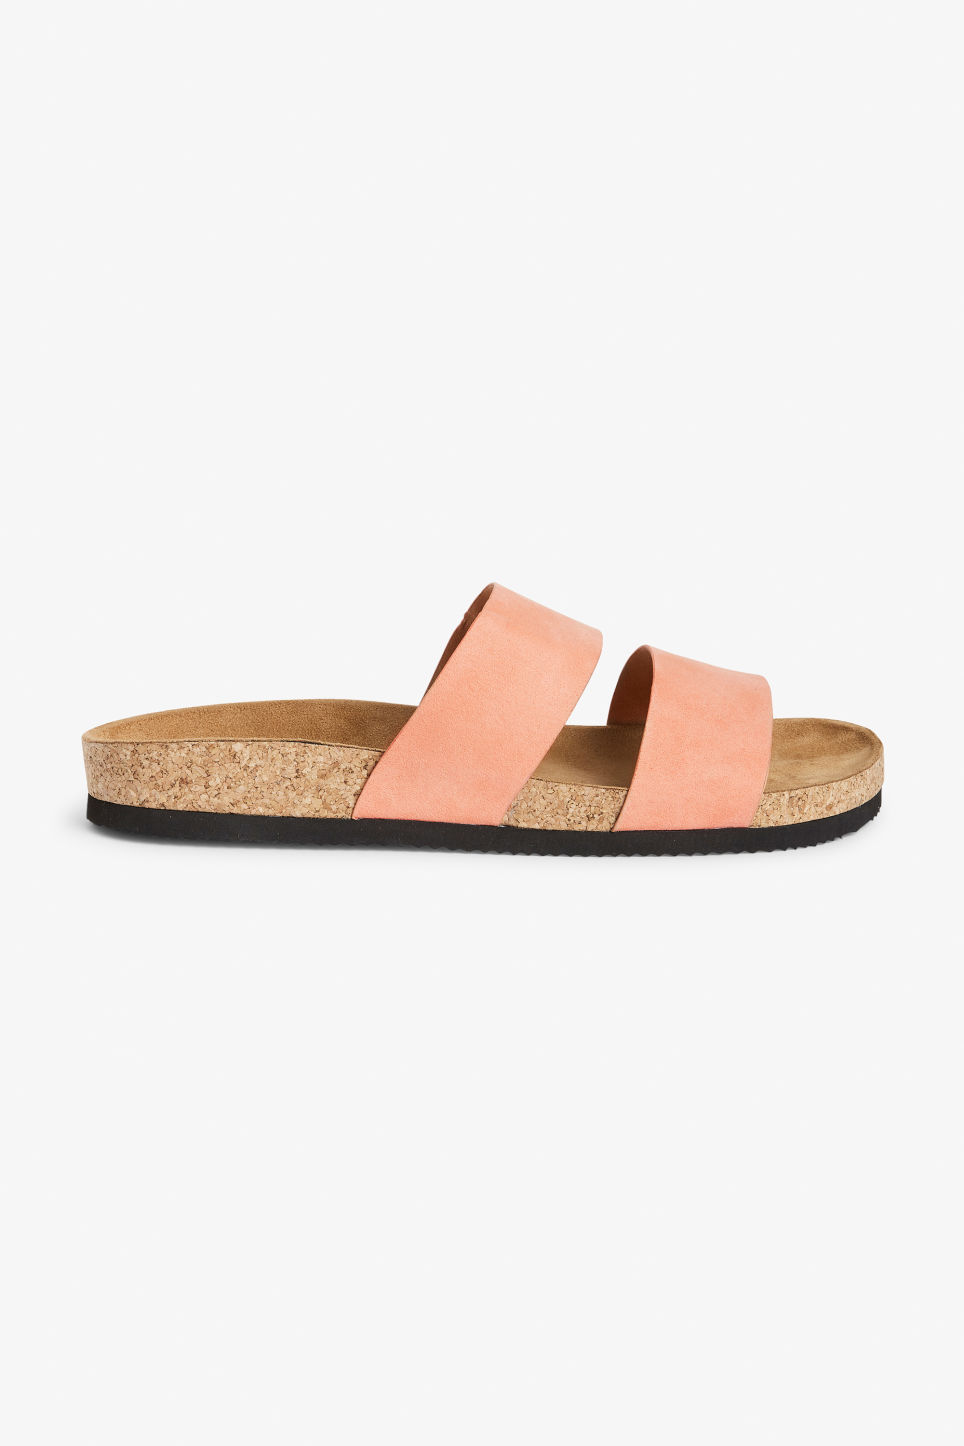 Detailed image of Monki flat sandals in pink